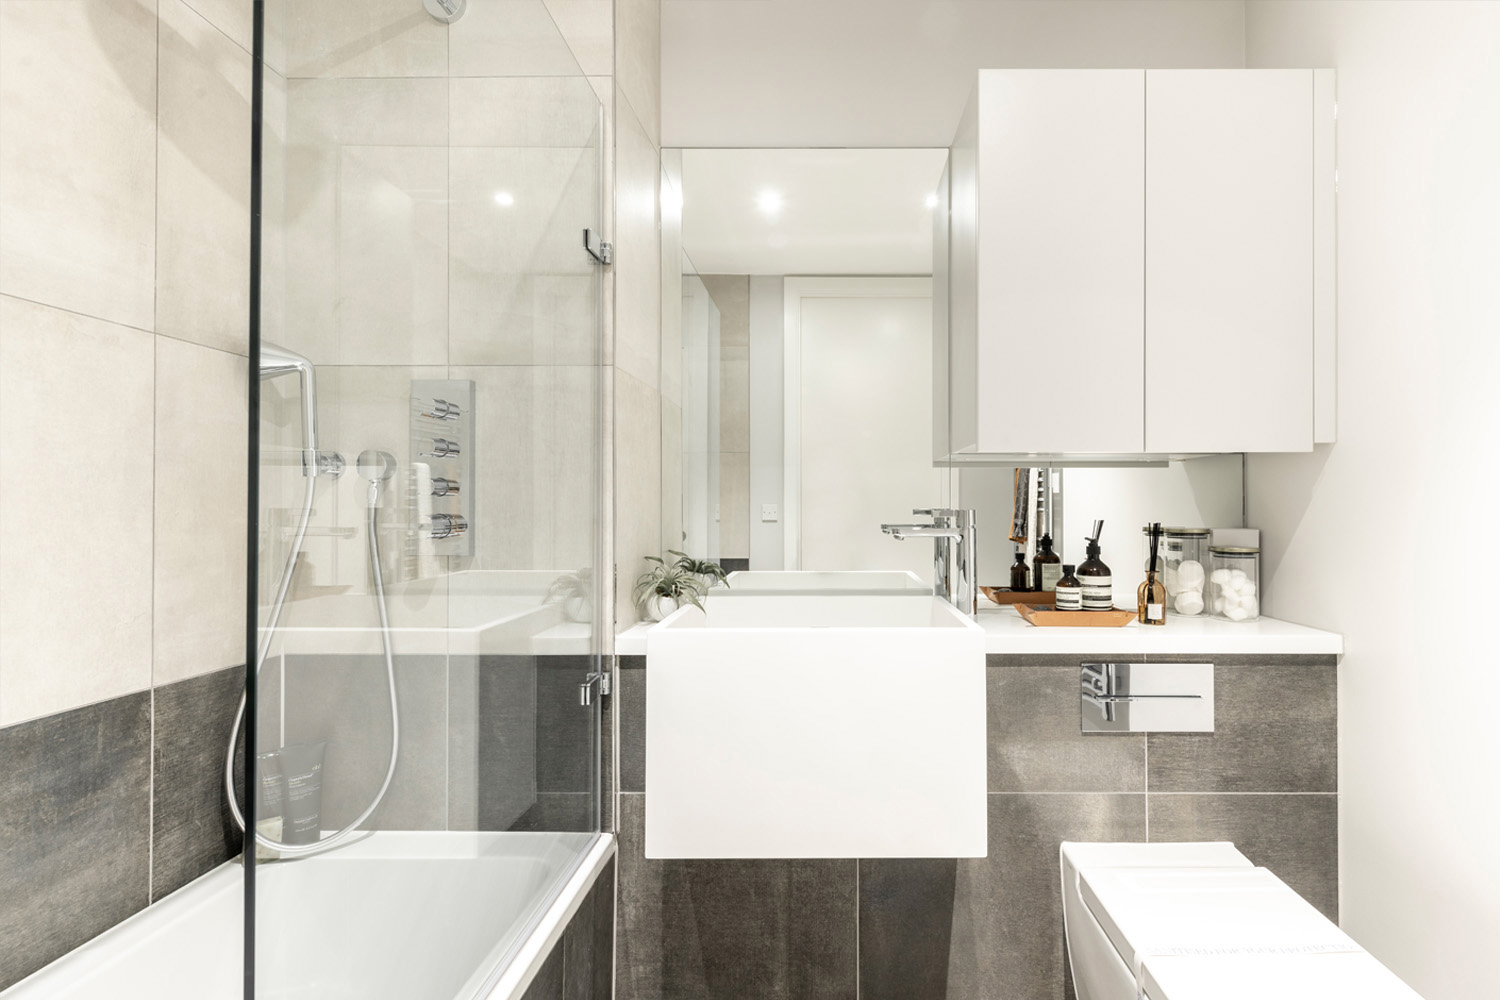 SUNA-INTERIOR-DESIGN_PEABODY_WHARF-ROAD_ISLINGTON_BATHROOM-DESIGN-004.jpg